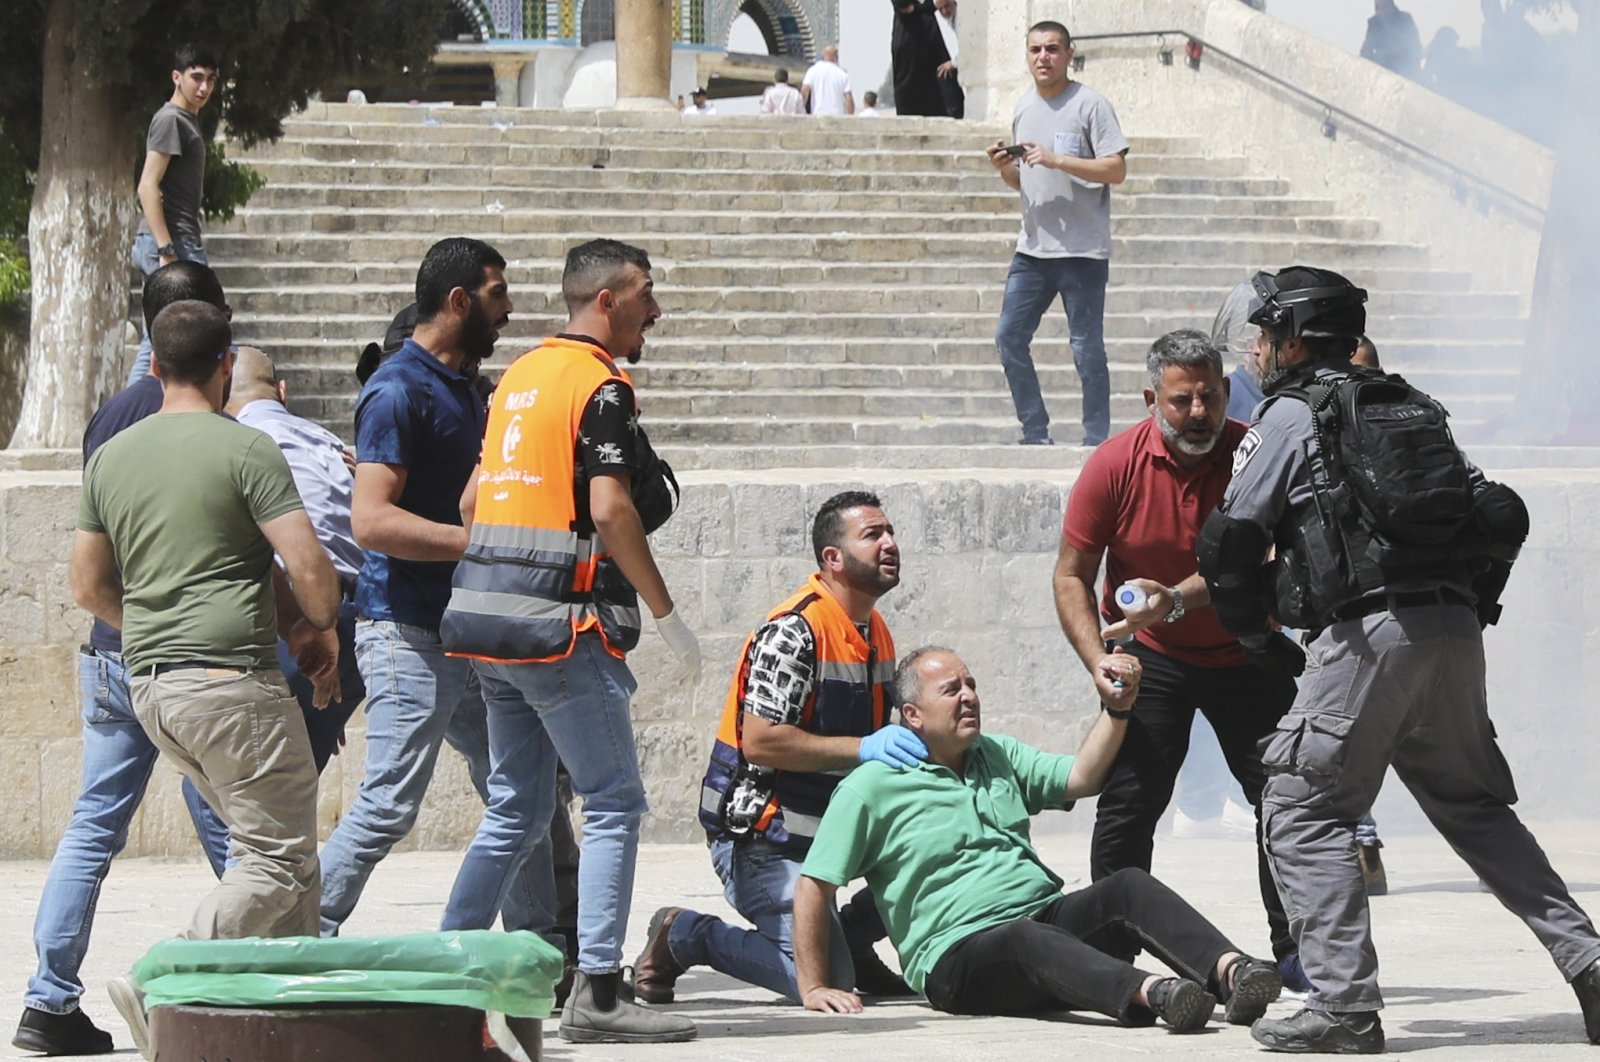 Israeli police clear Palestinians from the plaza in front of the Dome of the Rock at Al-Aqsa Mosque in East Jerusalem, Palestine, Friday, May 21, 2021. (AP Photo)